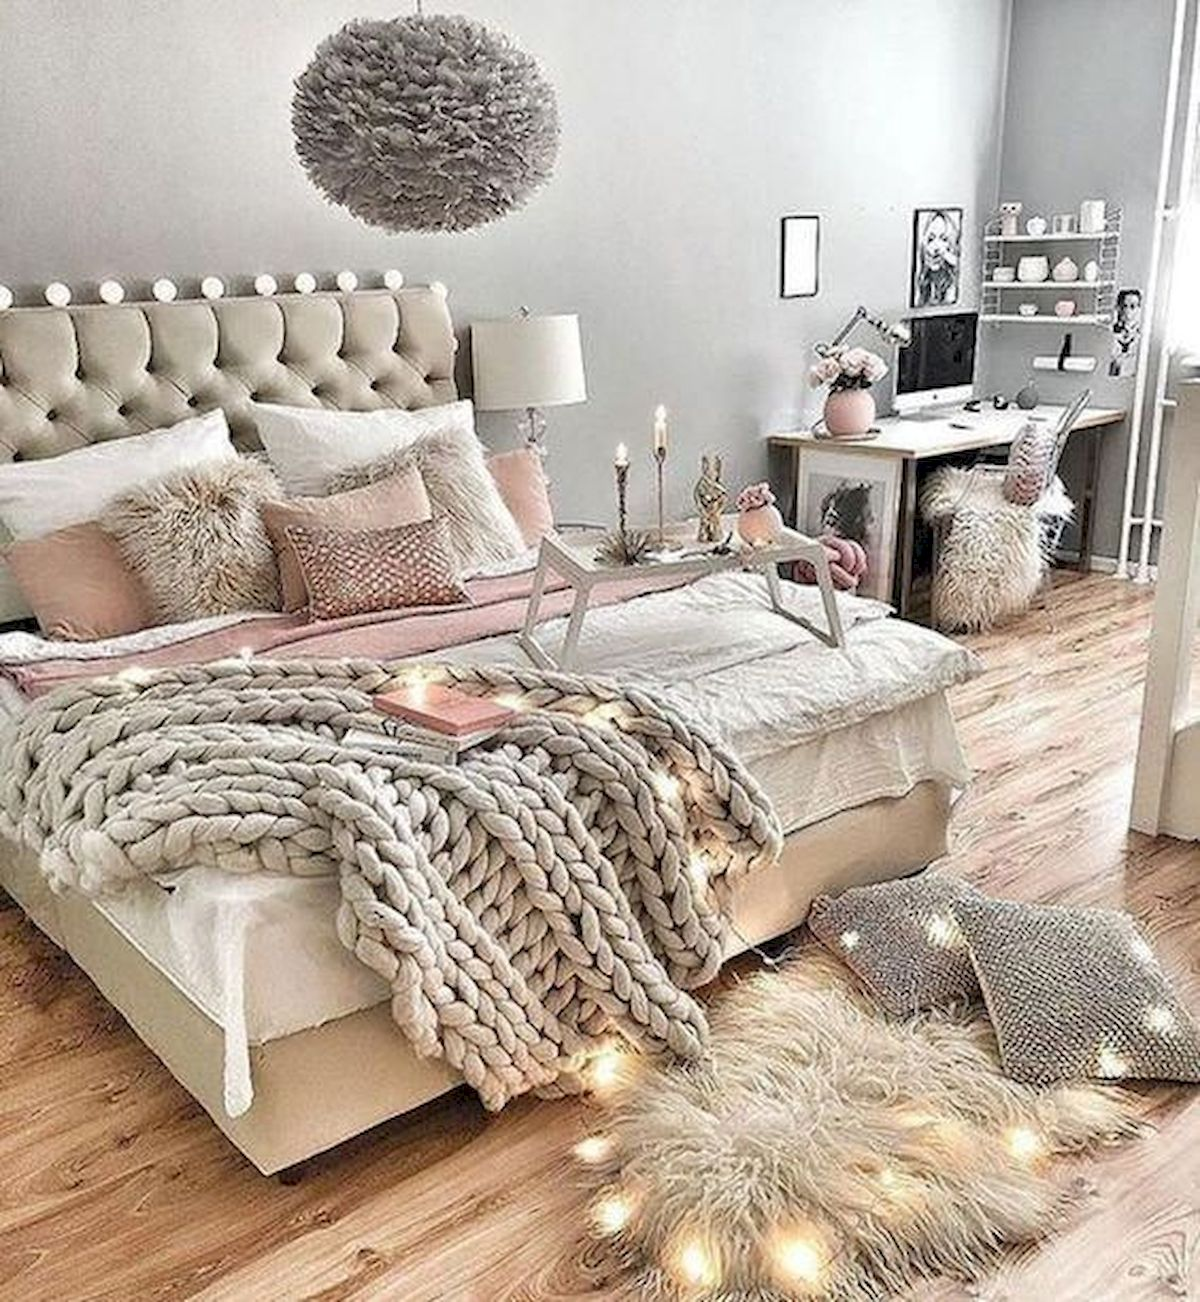 36 Creative DIY Wall Bedroom Decor Ideas That Unique And Beautiful (4)